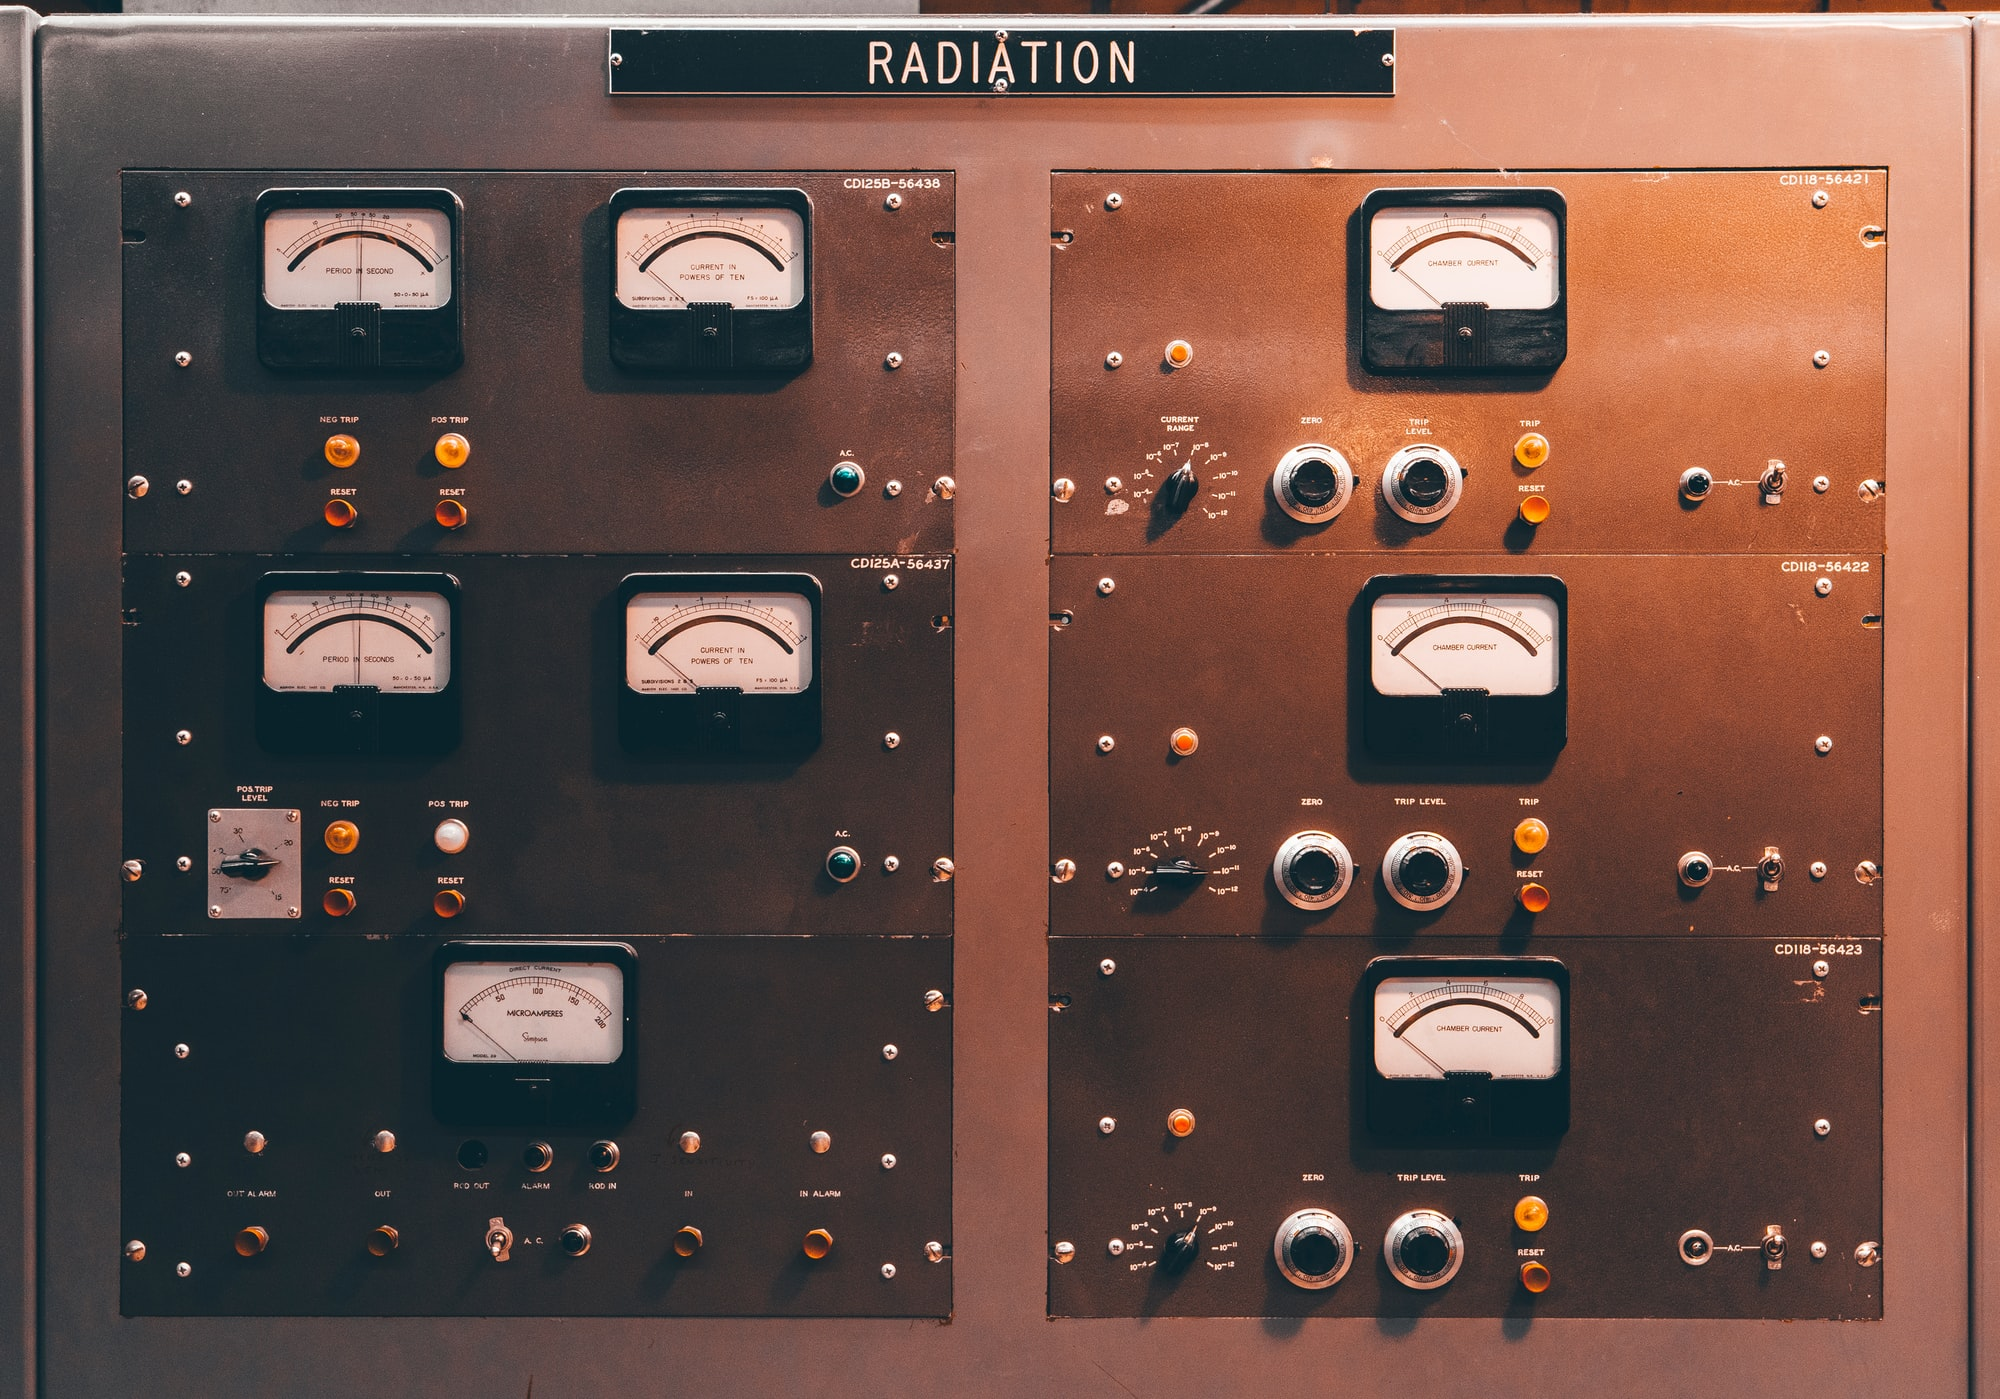 I took a remote highway cutting through Idaho and stumbled upon a free roadside museum that used to be a nuclear power plant. Obviously, I had to check it out and add another hour to my drive... Here's a bunch of cool 1950s-era dials and knobs located on the main control station.